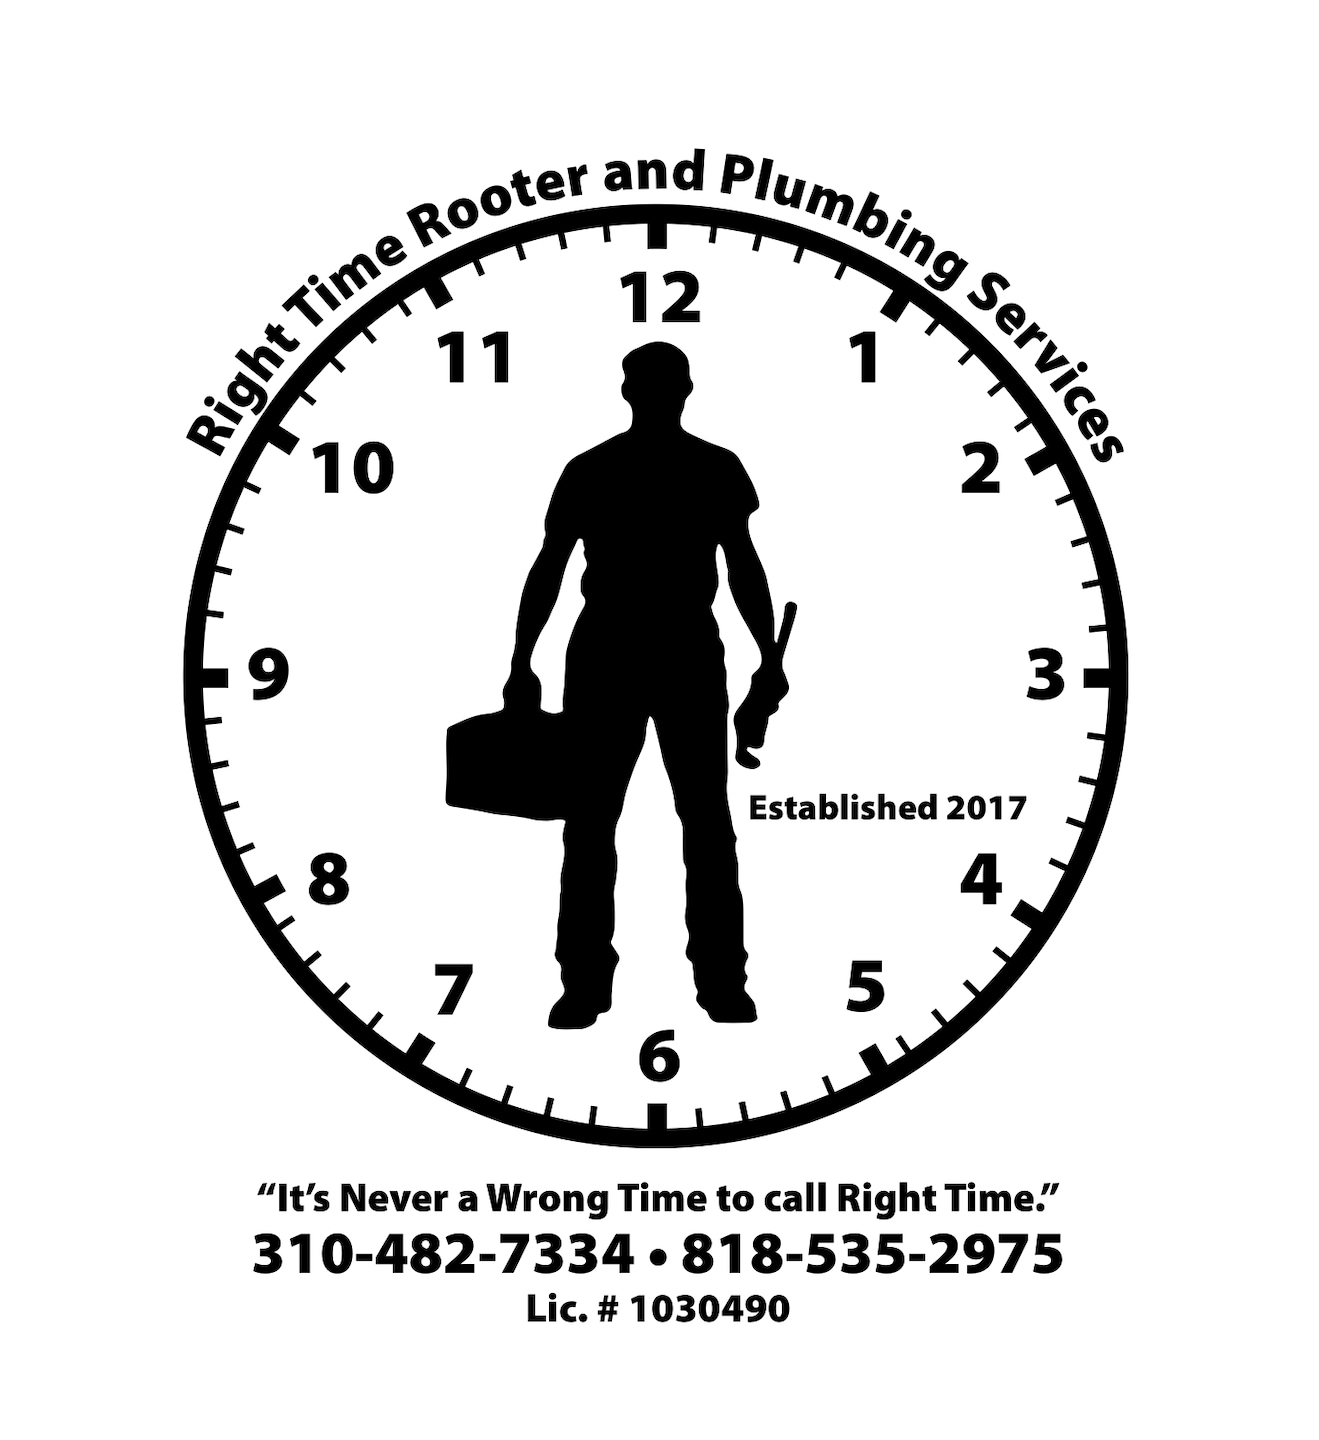 Right Time Rooter and Plumbing Services